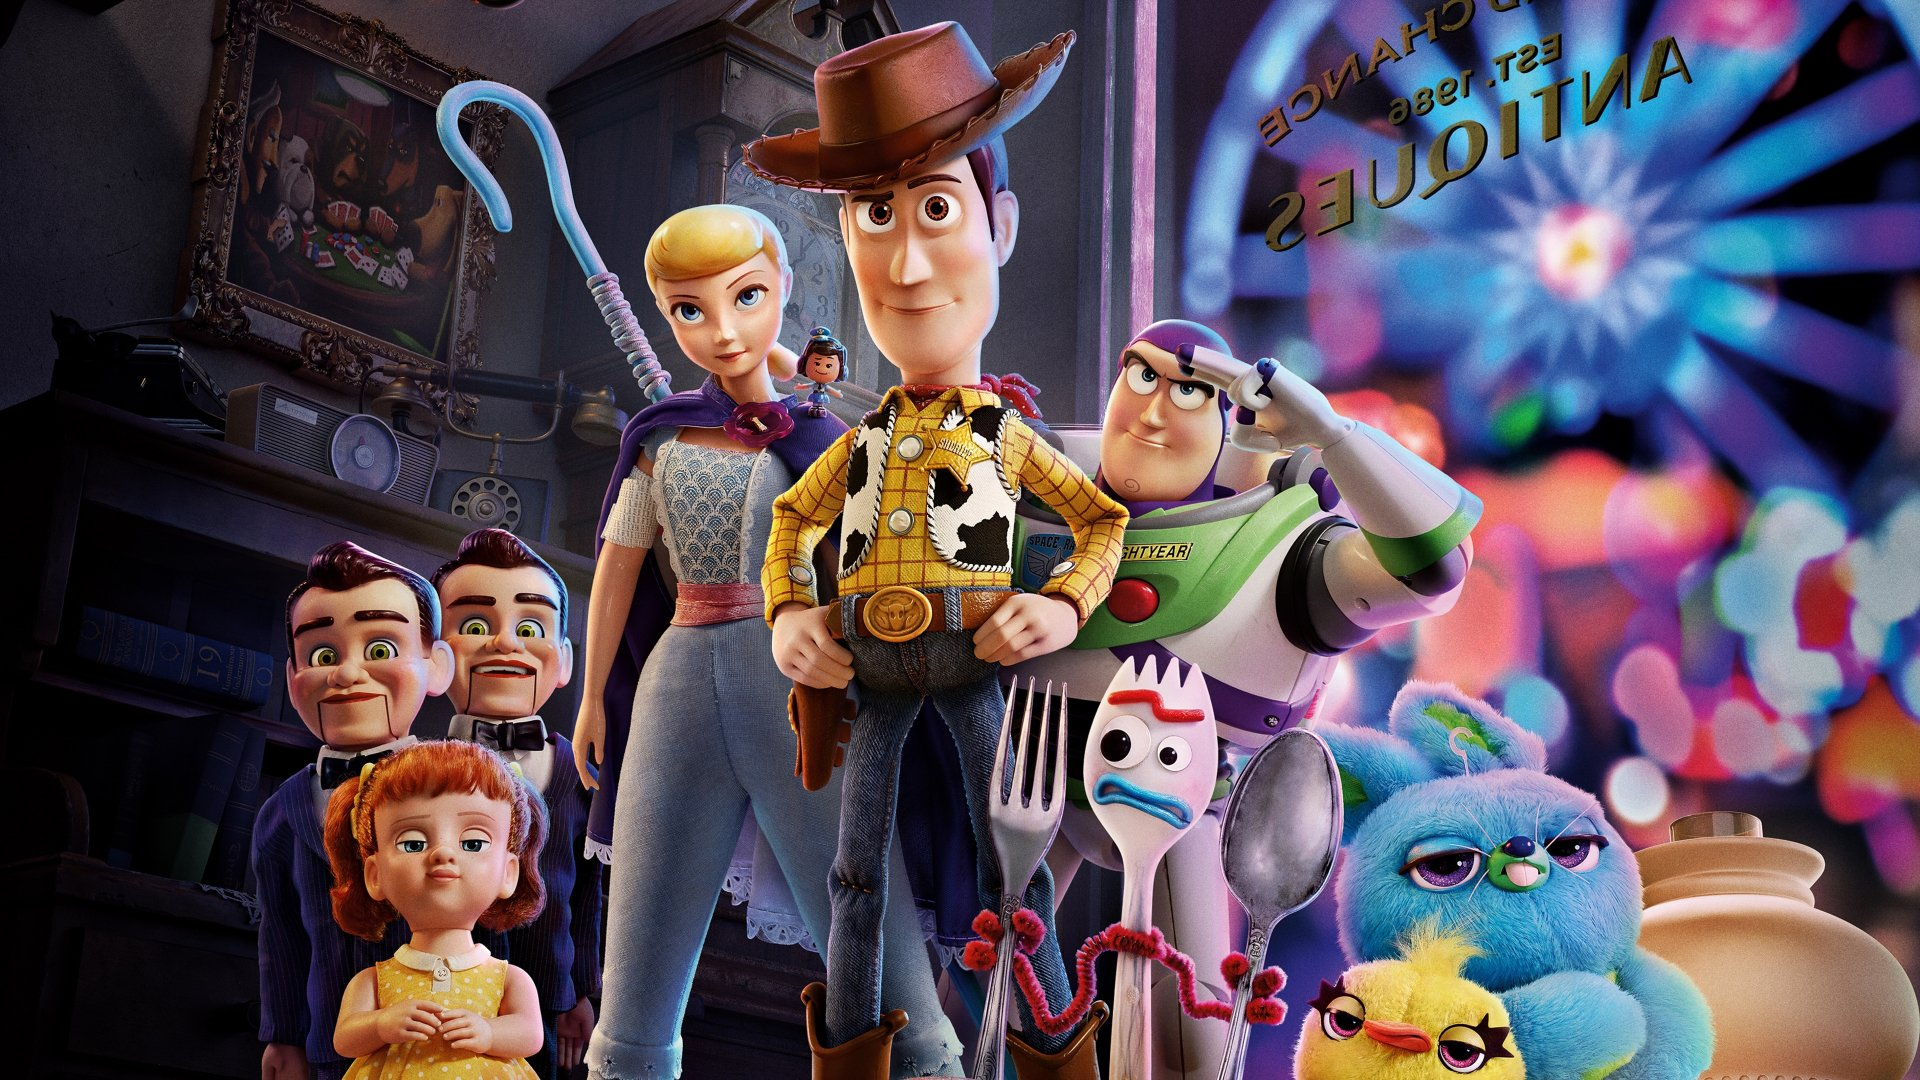 Image result for toy story 4 wallpaper